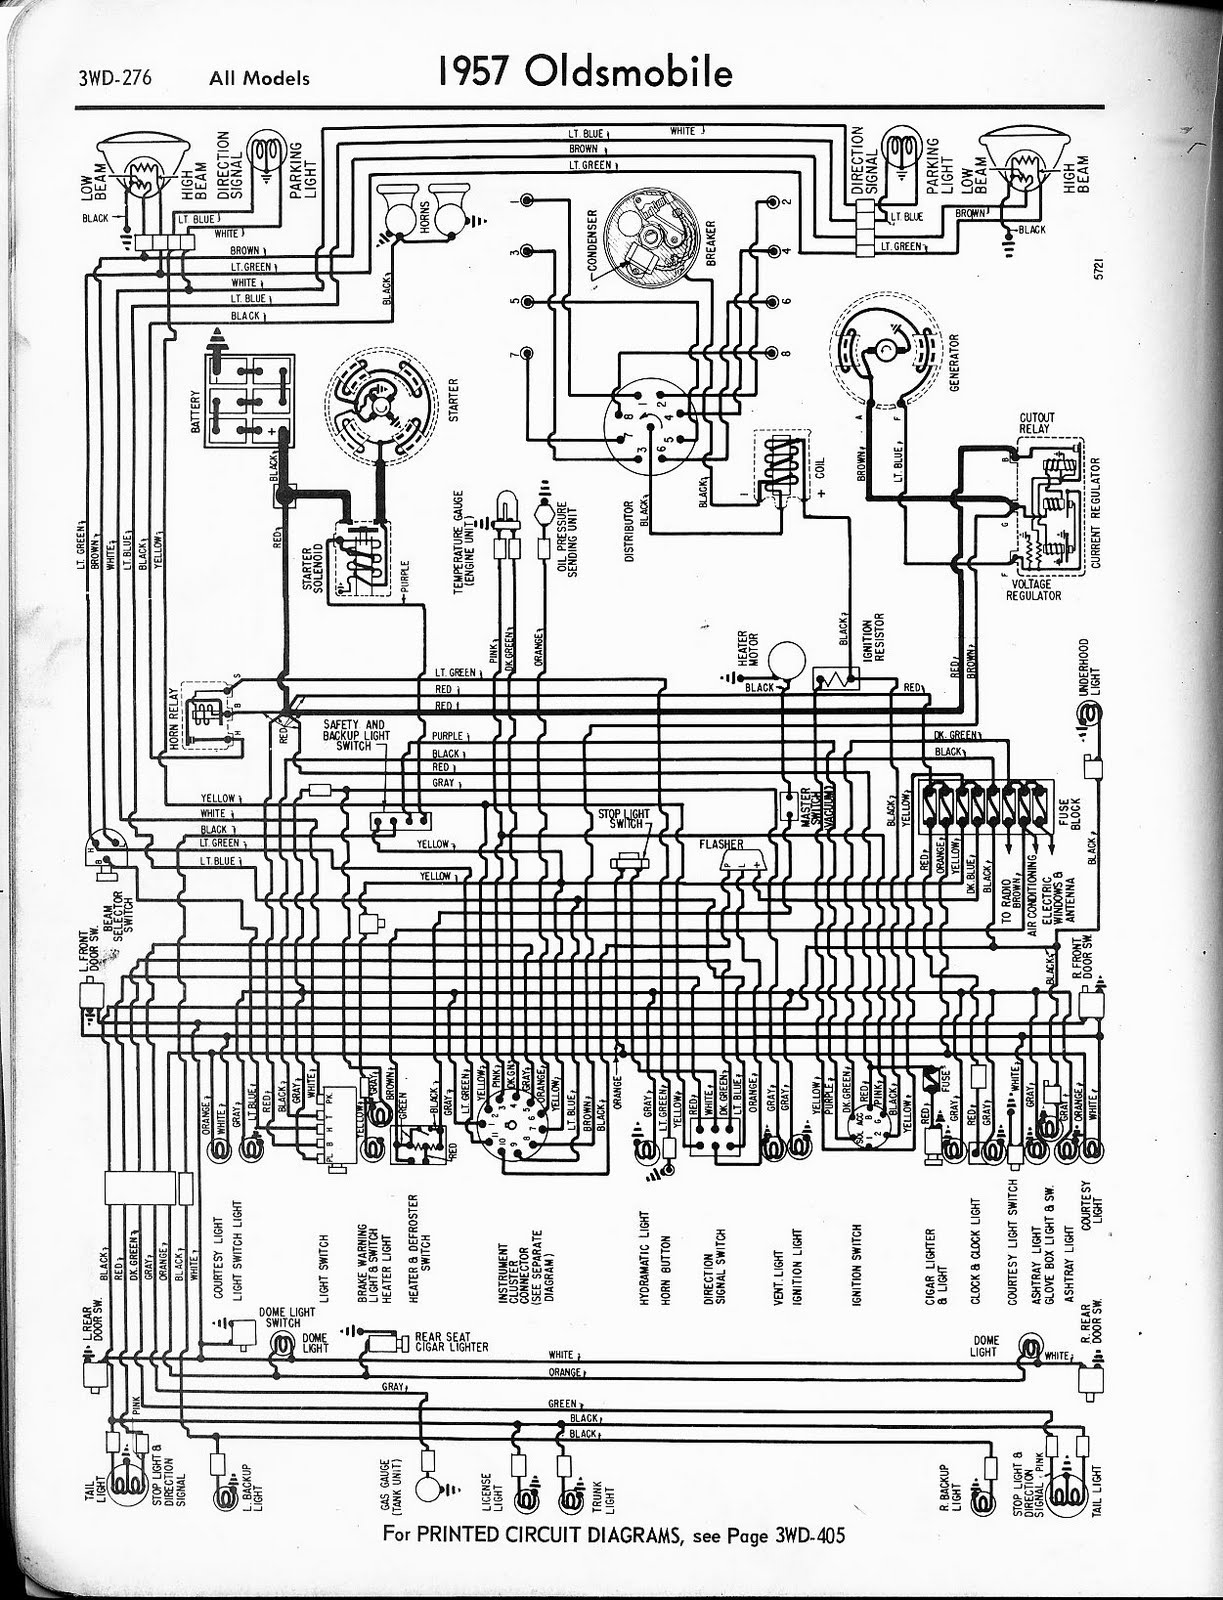 1985 cutlass fuse box wiring library 1985 Oldsmobile Cutlass Wiring-Diagram Radio free auto wiring diagram 1957 oldsmobile wiring diagram 1985 oldsmobile cutlass instrument cluster wiring diagram 1985